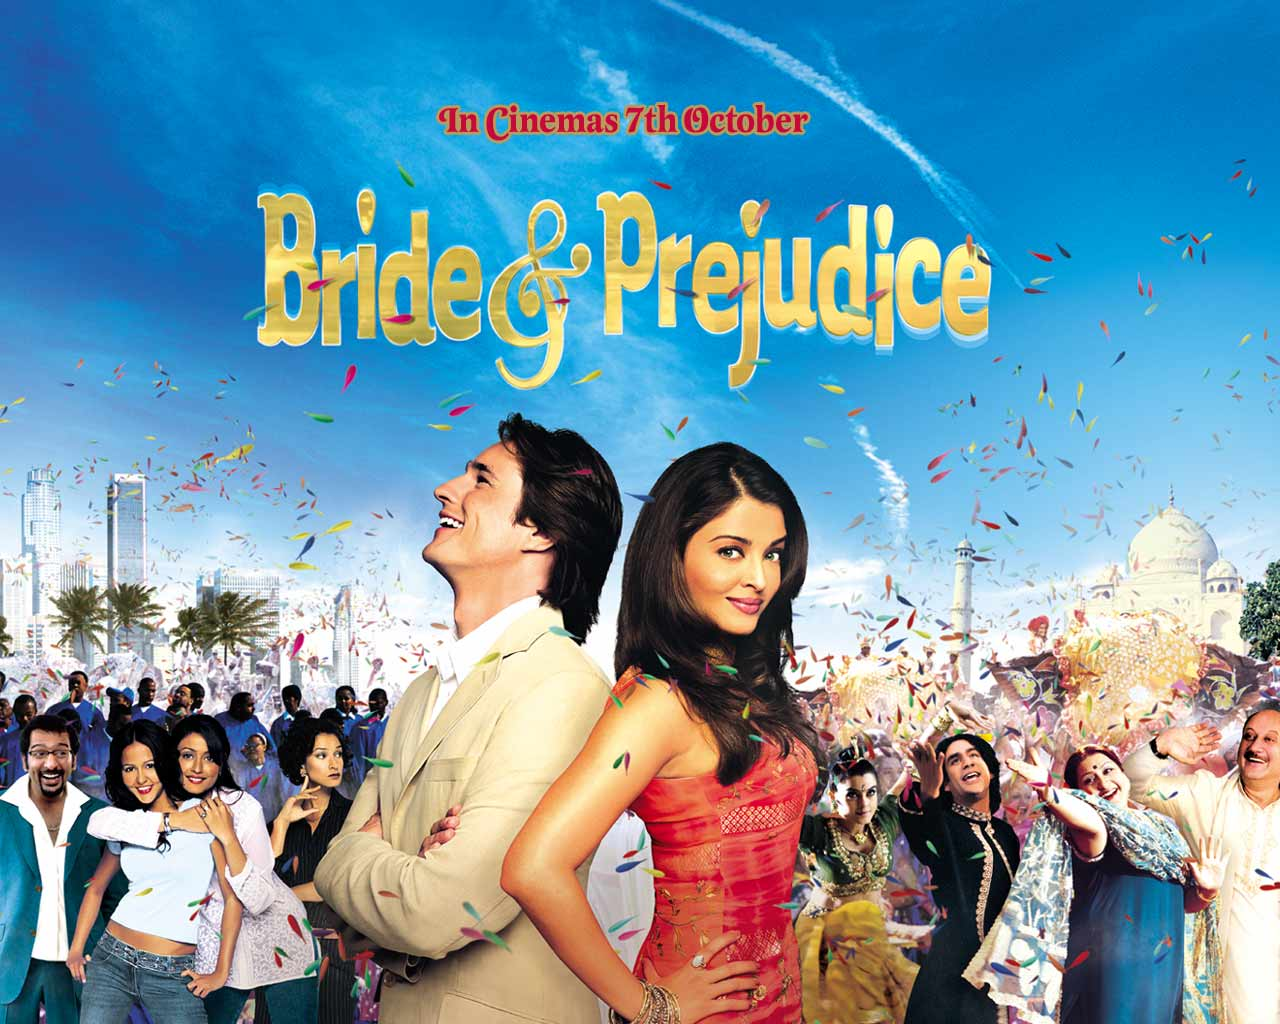 bride and prejudice - photo #4